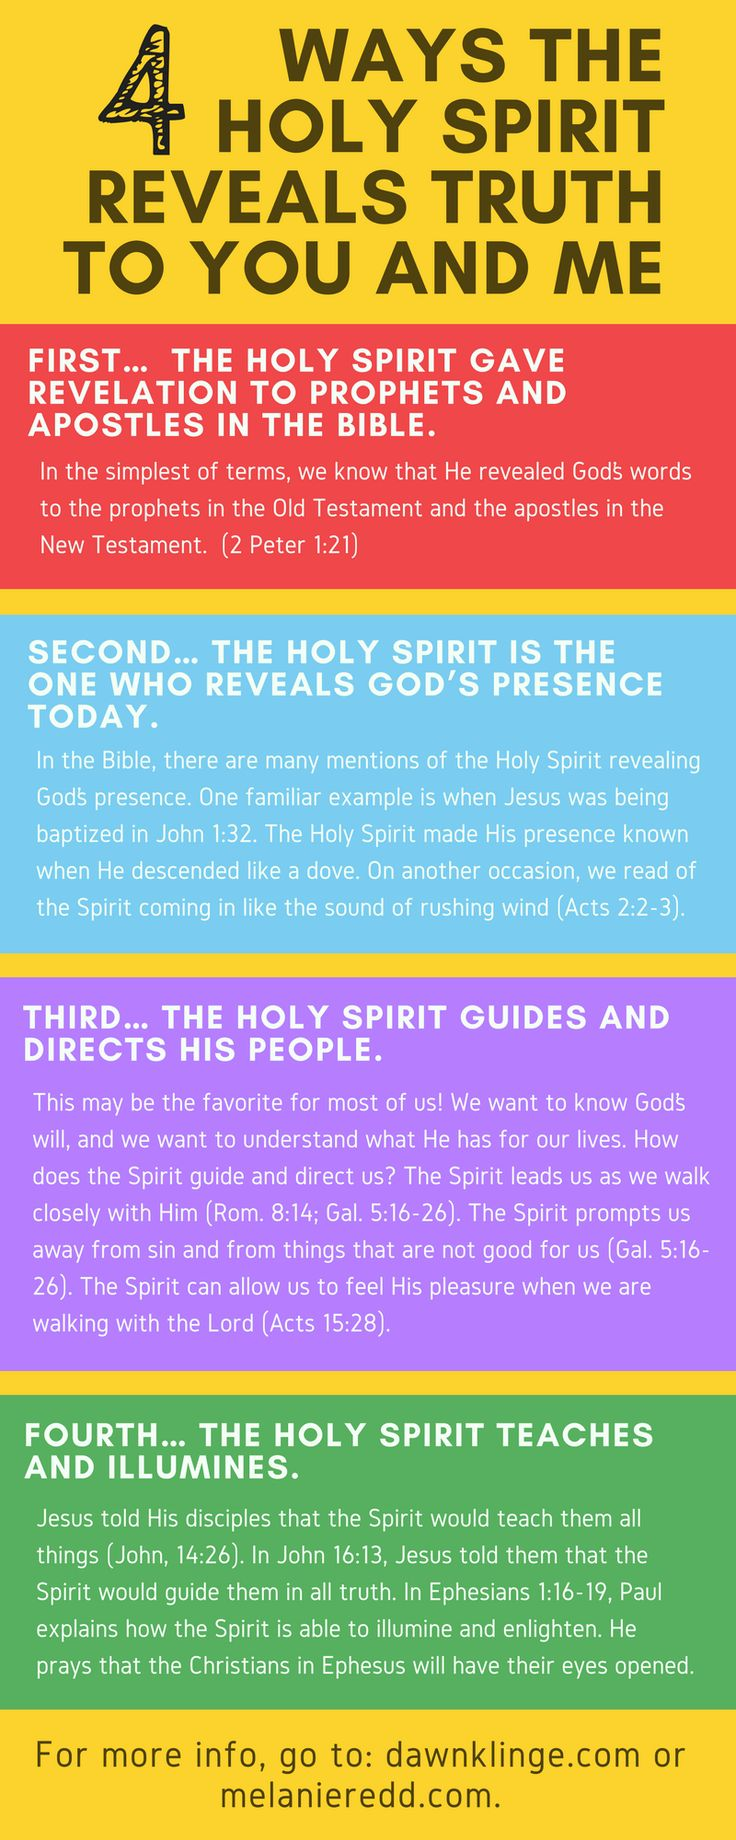 4 ways the Holy Spirit reveals truth to you and me